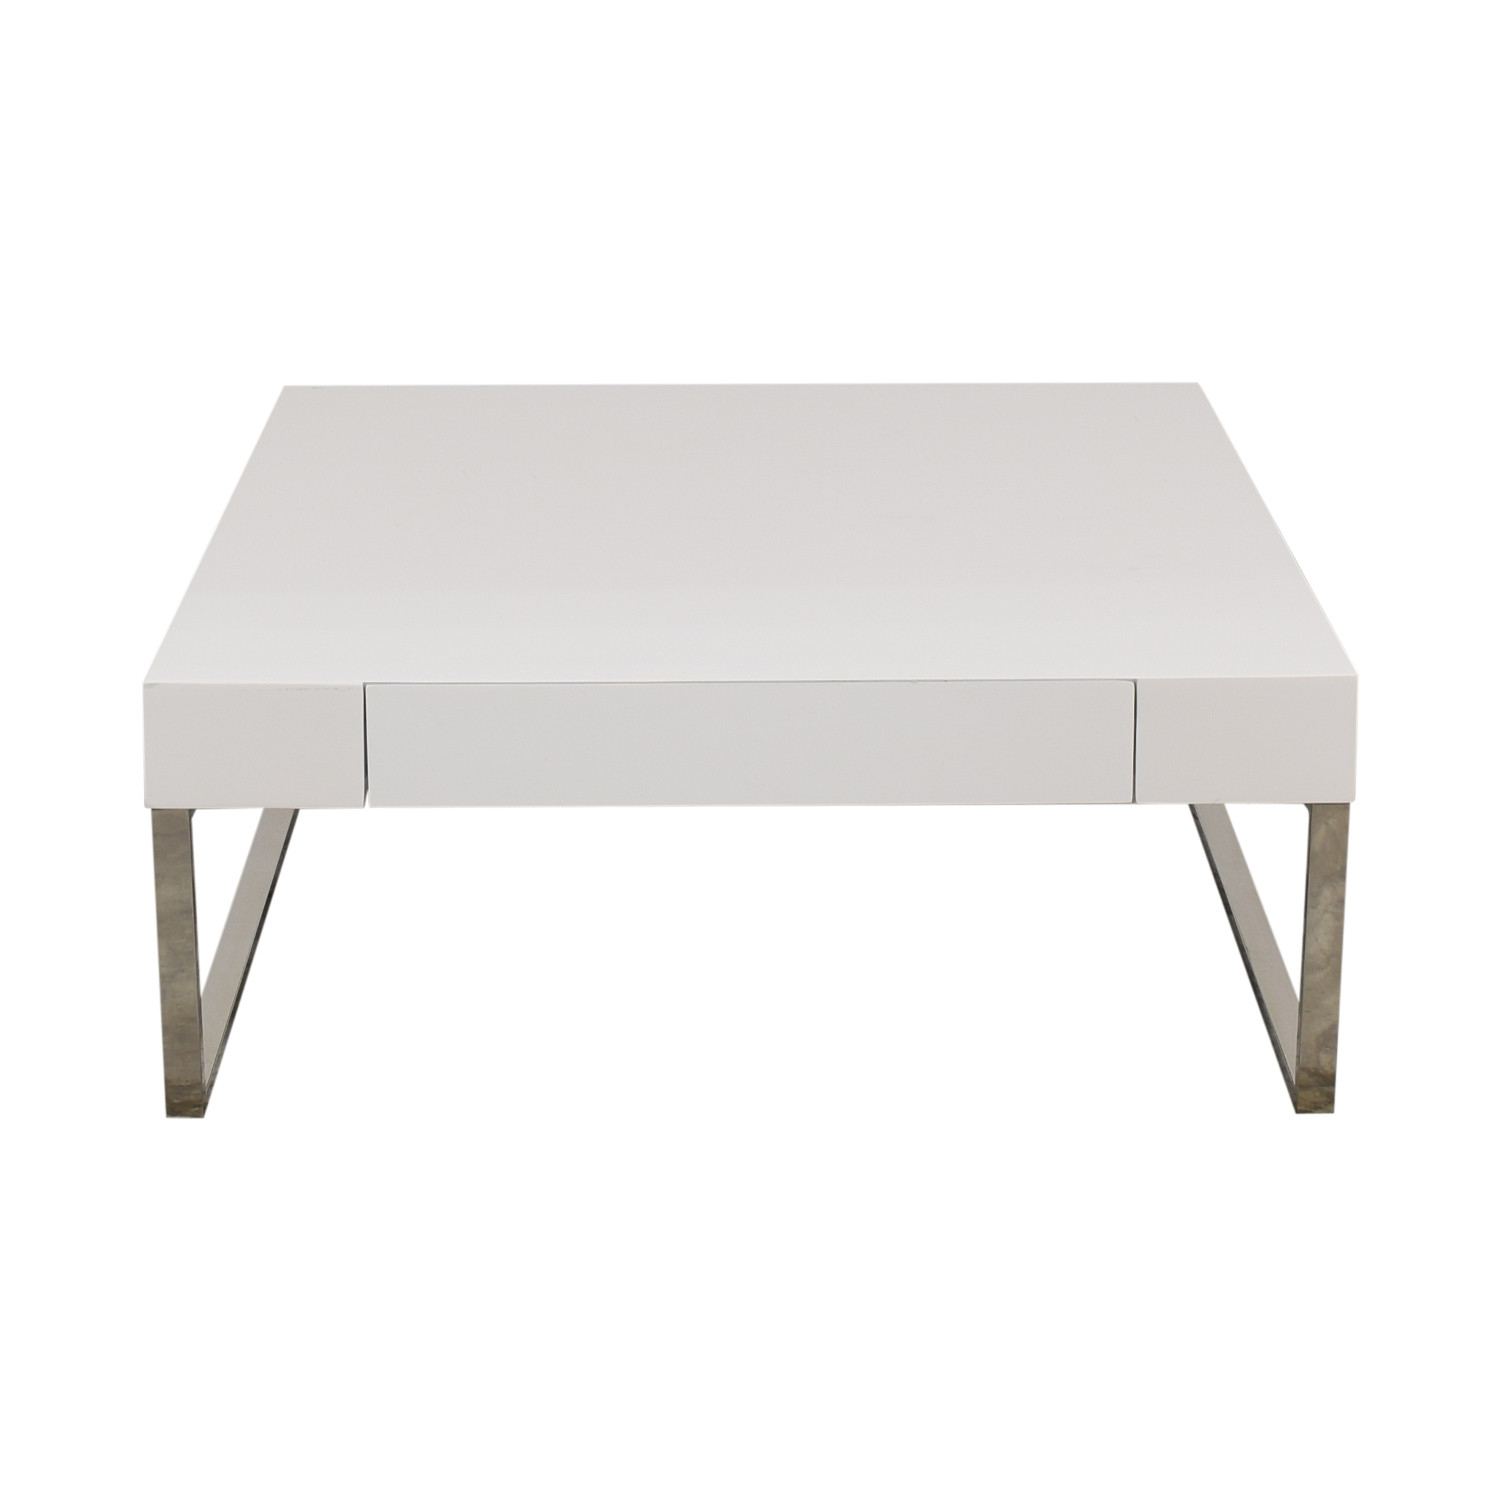 Modani Modani Gavino Coffee Table price